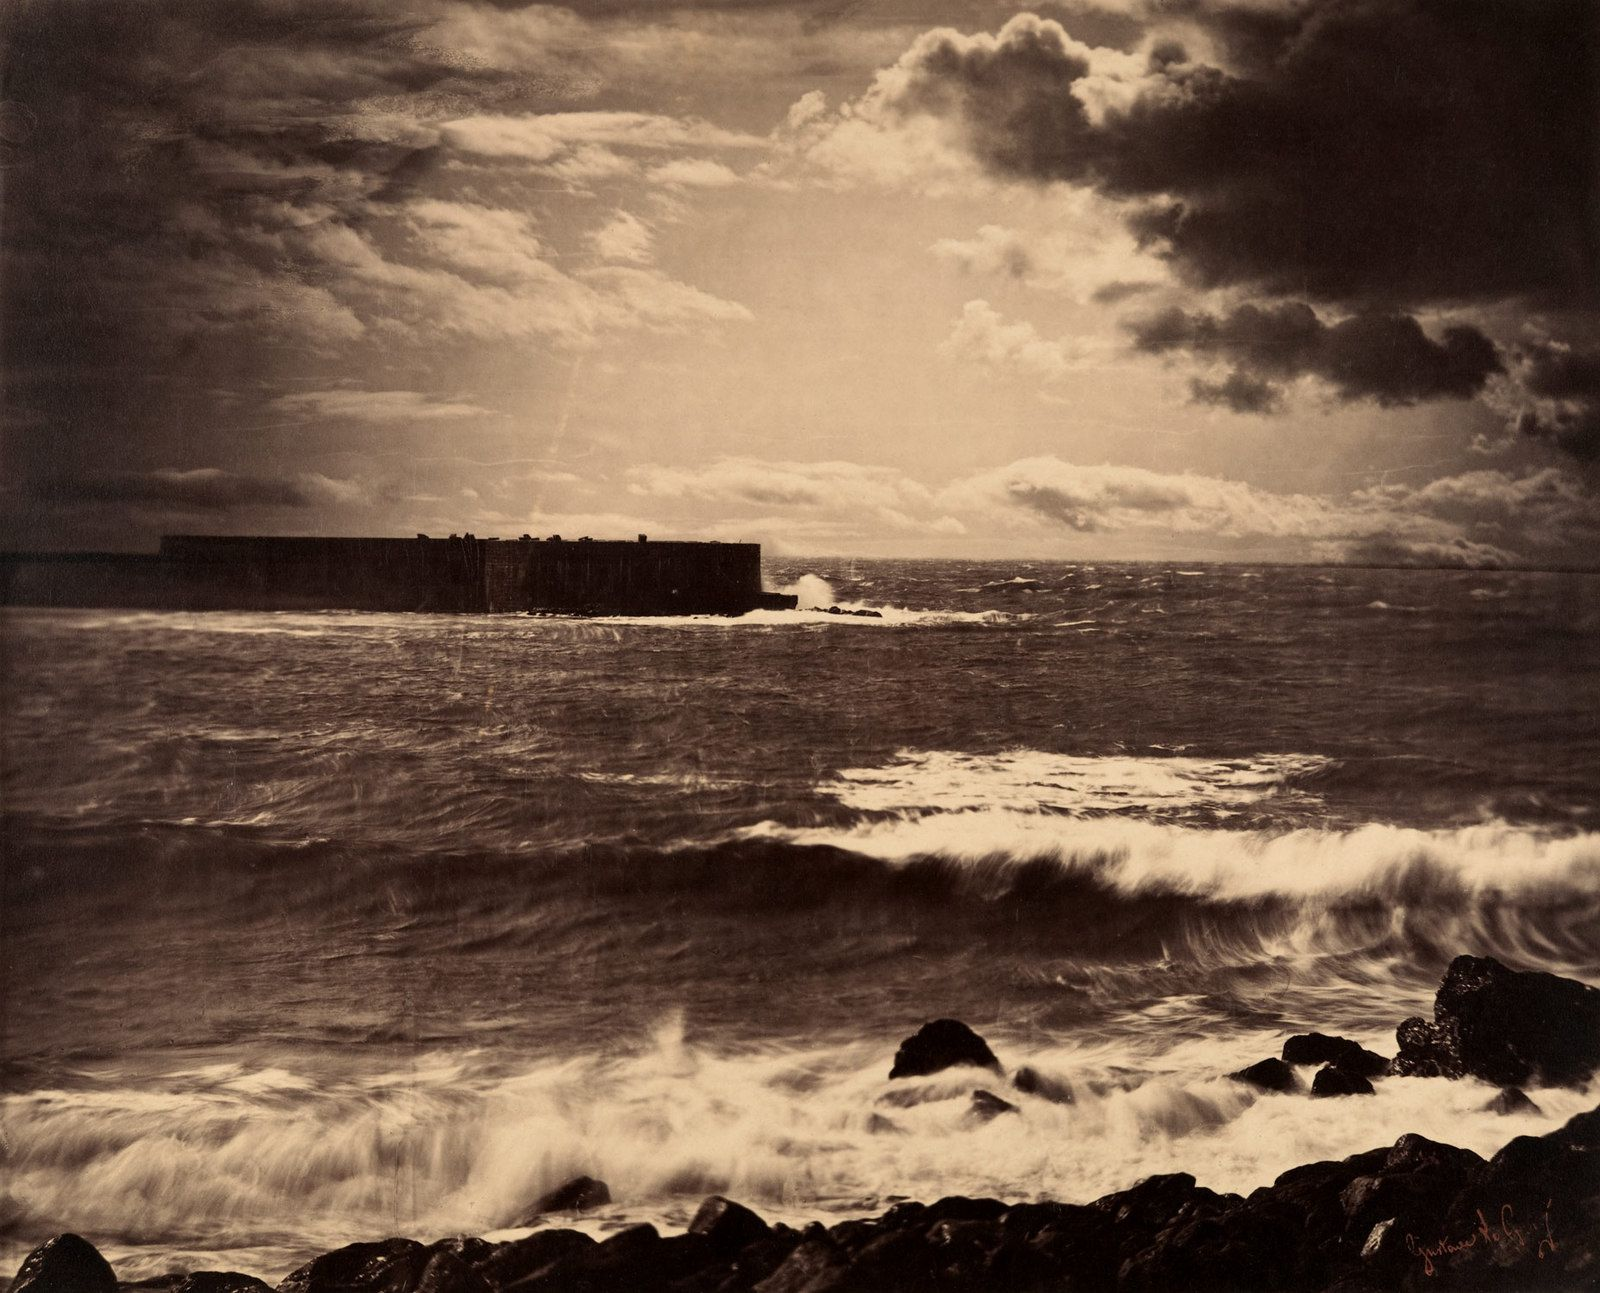 Gustave Le Gray, La grande vague Sète, 1857